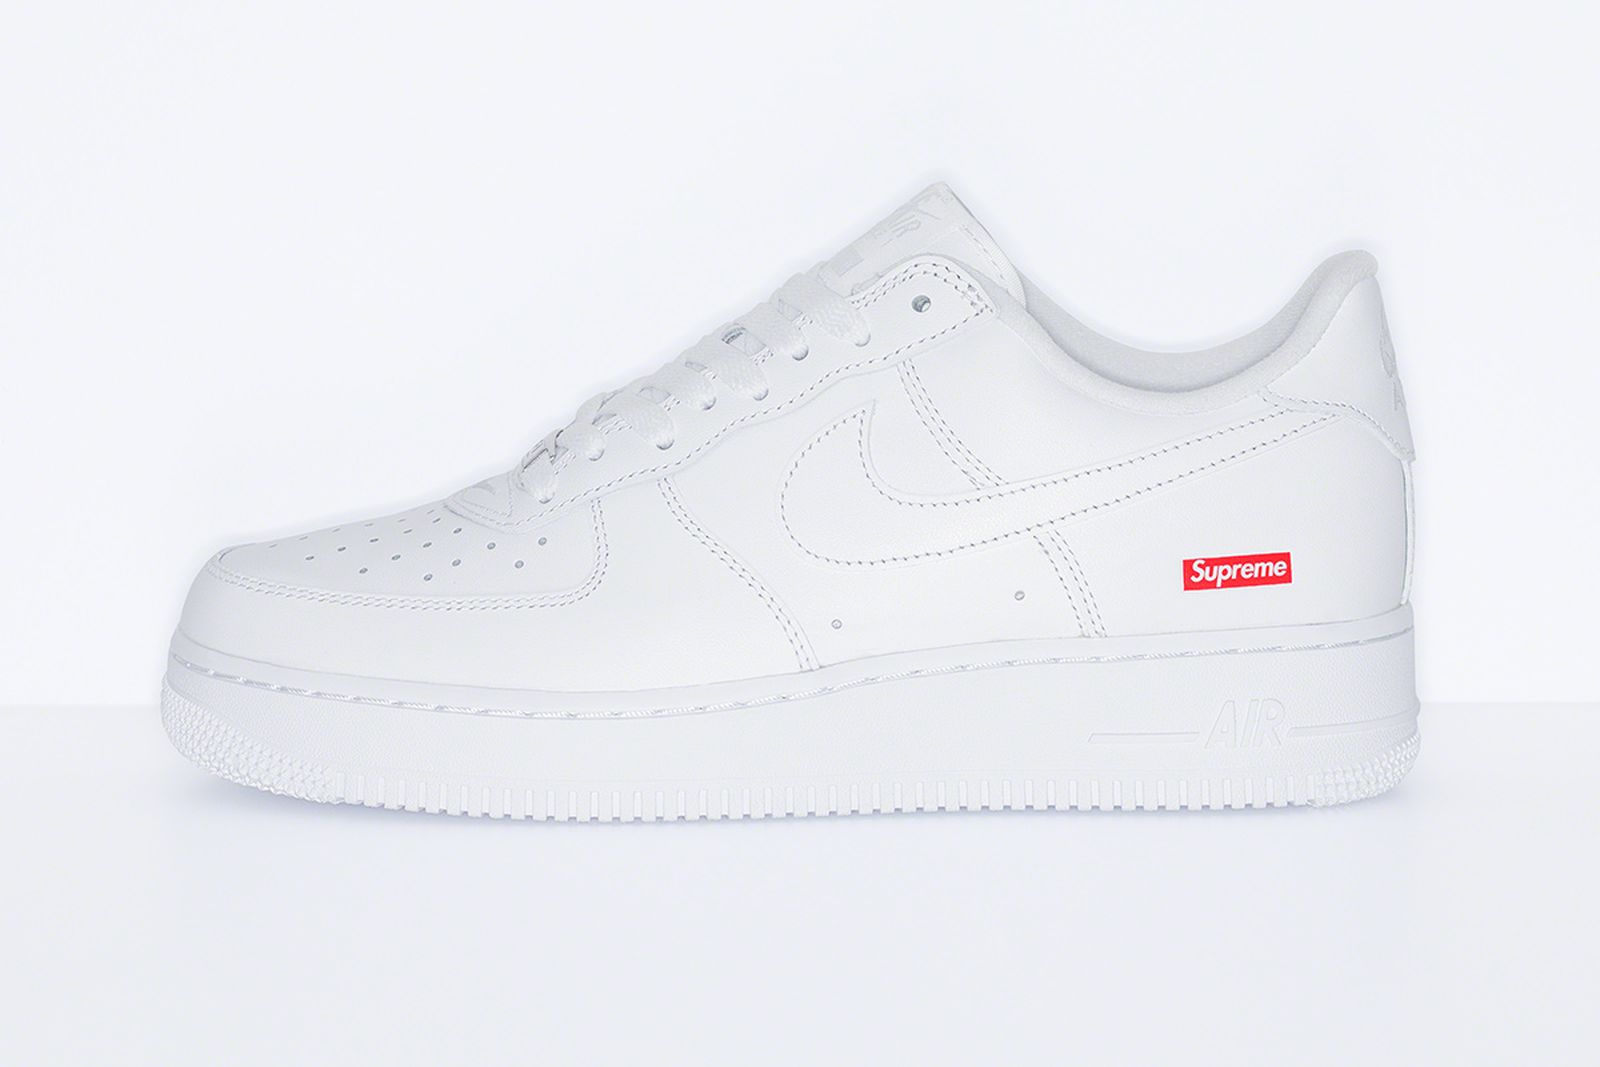 supreme-nike-air-force-1-low-2020-release-date-price-02